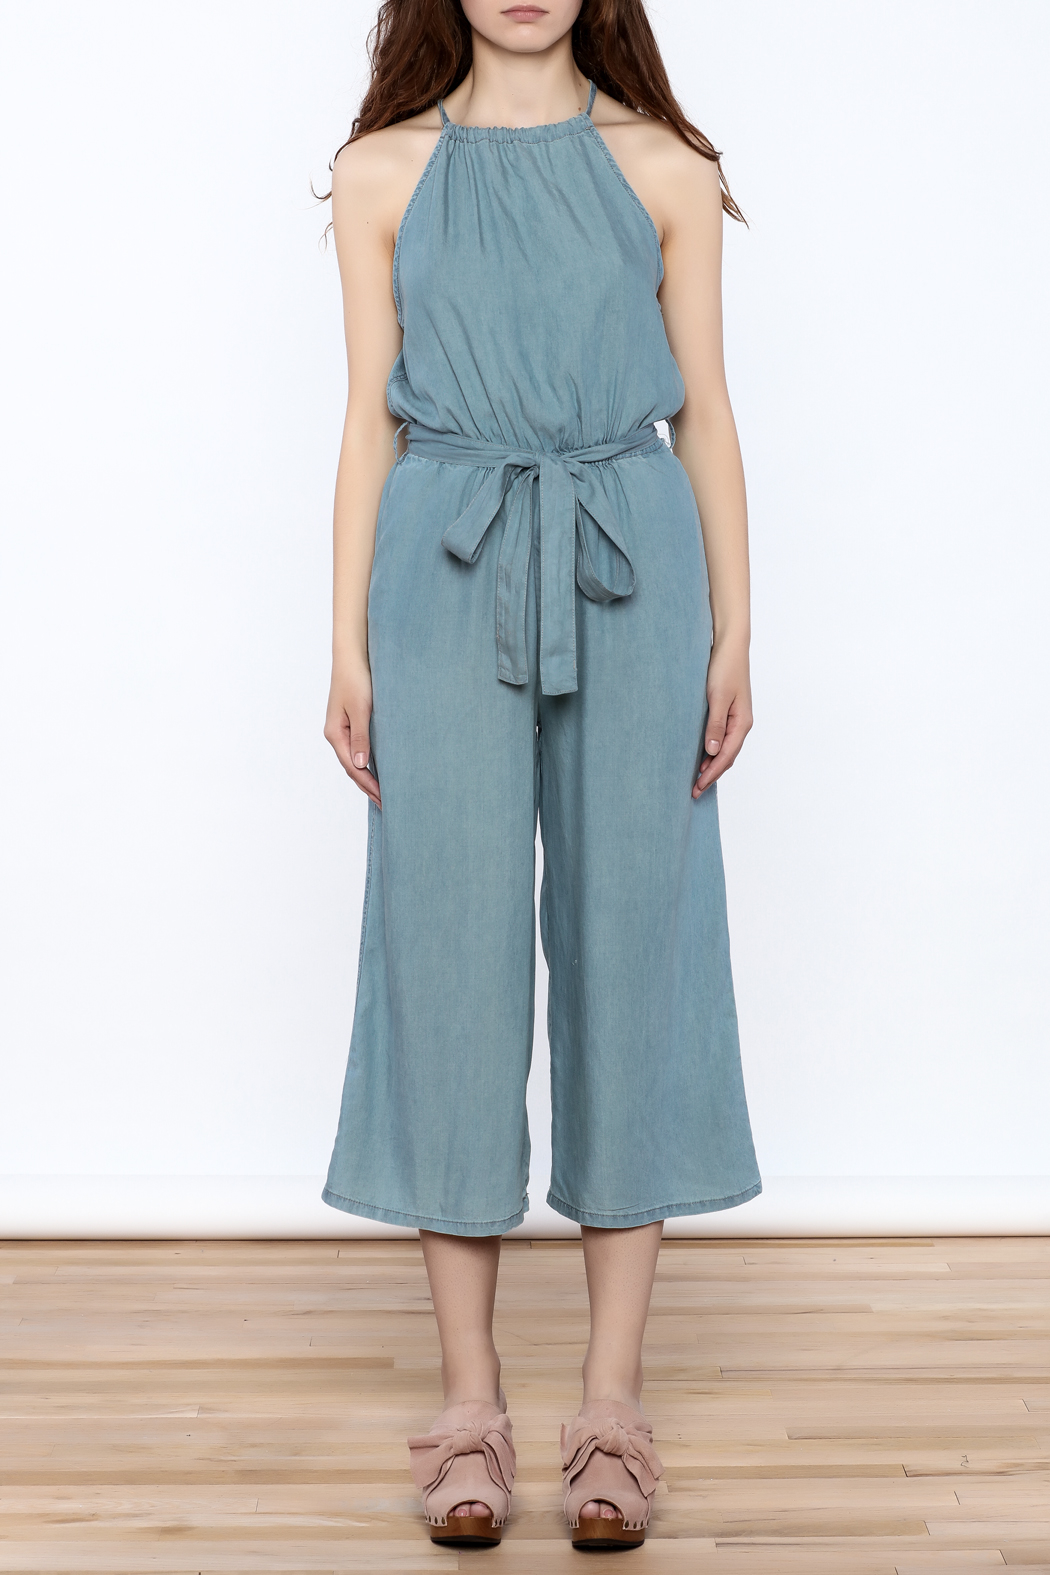 Do & Be Blue Culottes Jumpsuit - Front Cropped Image